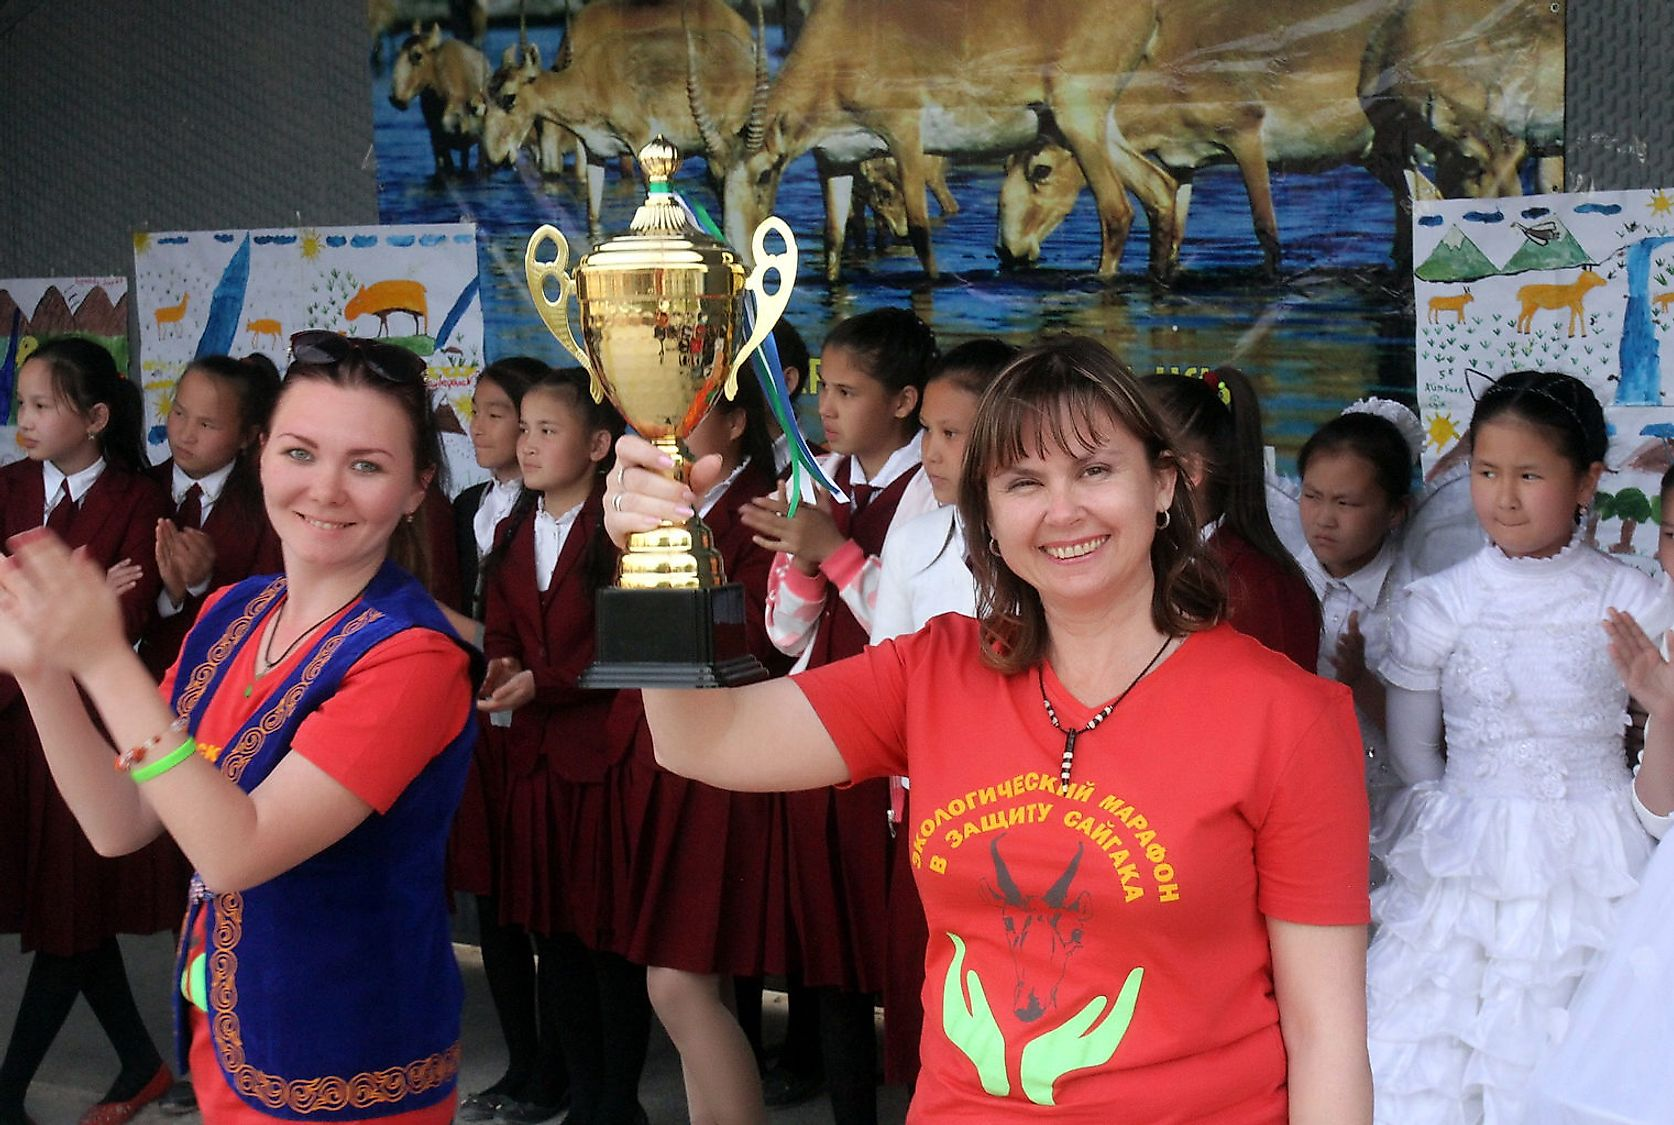 Elena Bykova with the trophy in hand at an Award ceremony on Saiga Day in Uzbekistan. Image credit: Alexander Esipov